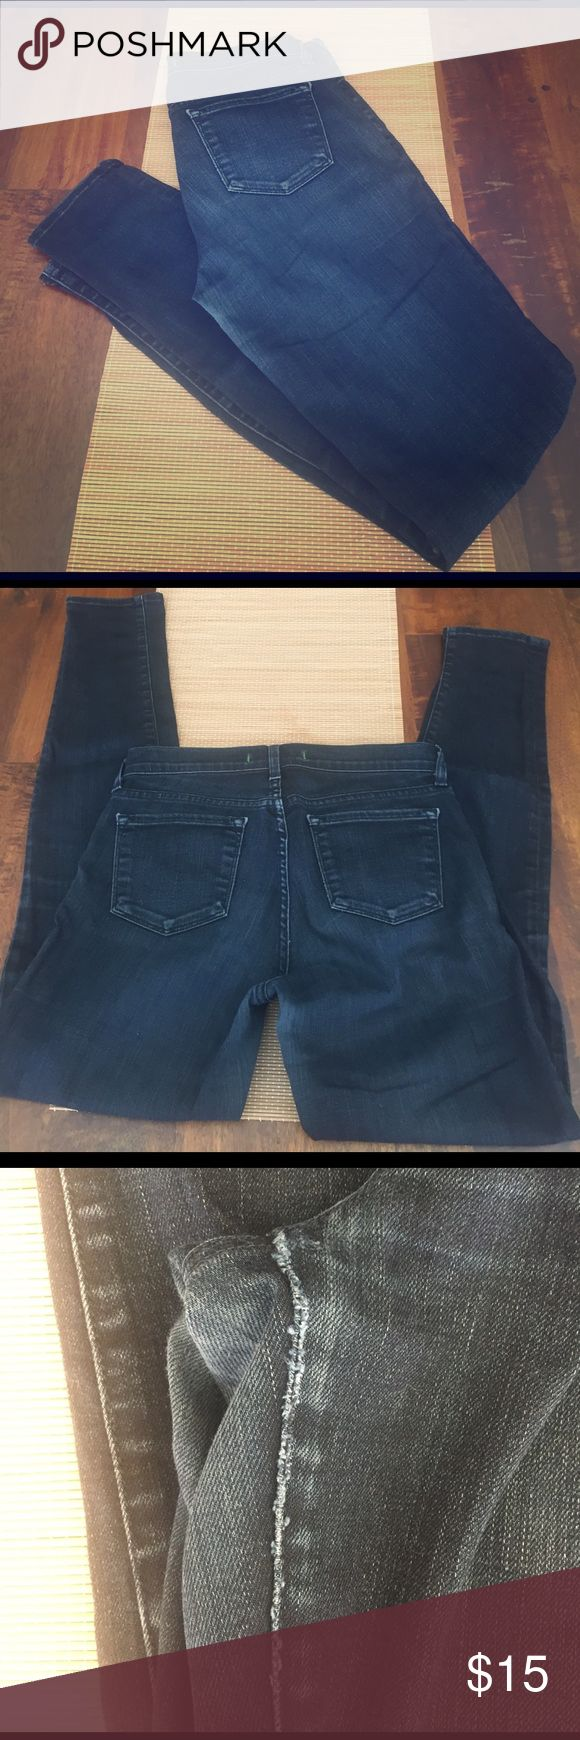 J Brand skinny jeans *Please read* Broken in J Brand skinny leg jeans in Tudor. Inseam has been sewed after a rip. Still wearable but in used condition. J Brand Jeans Skinny